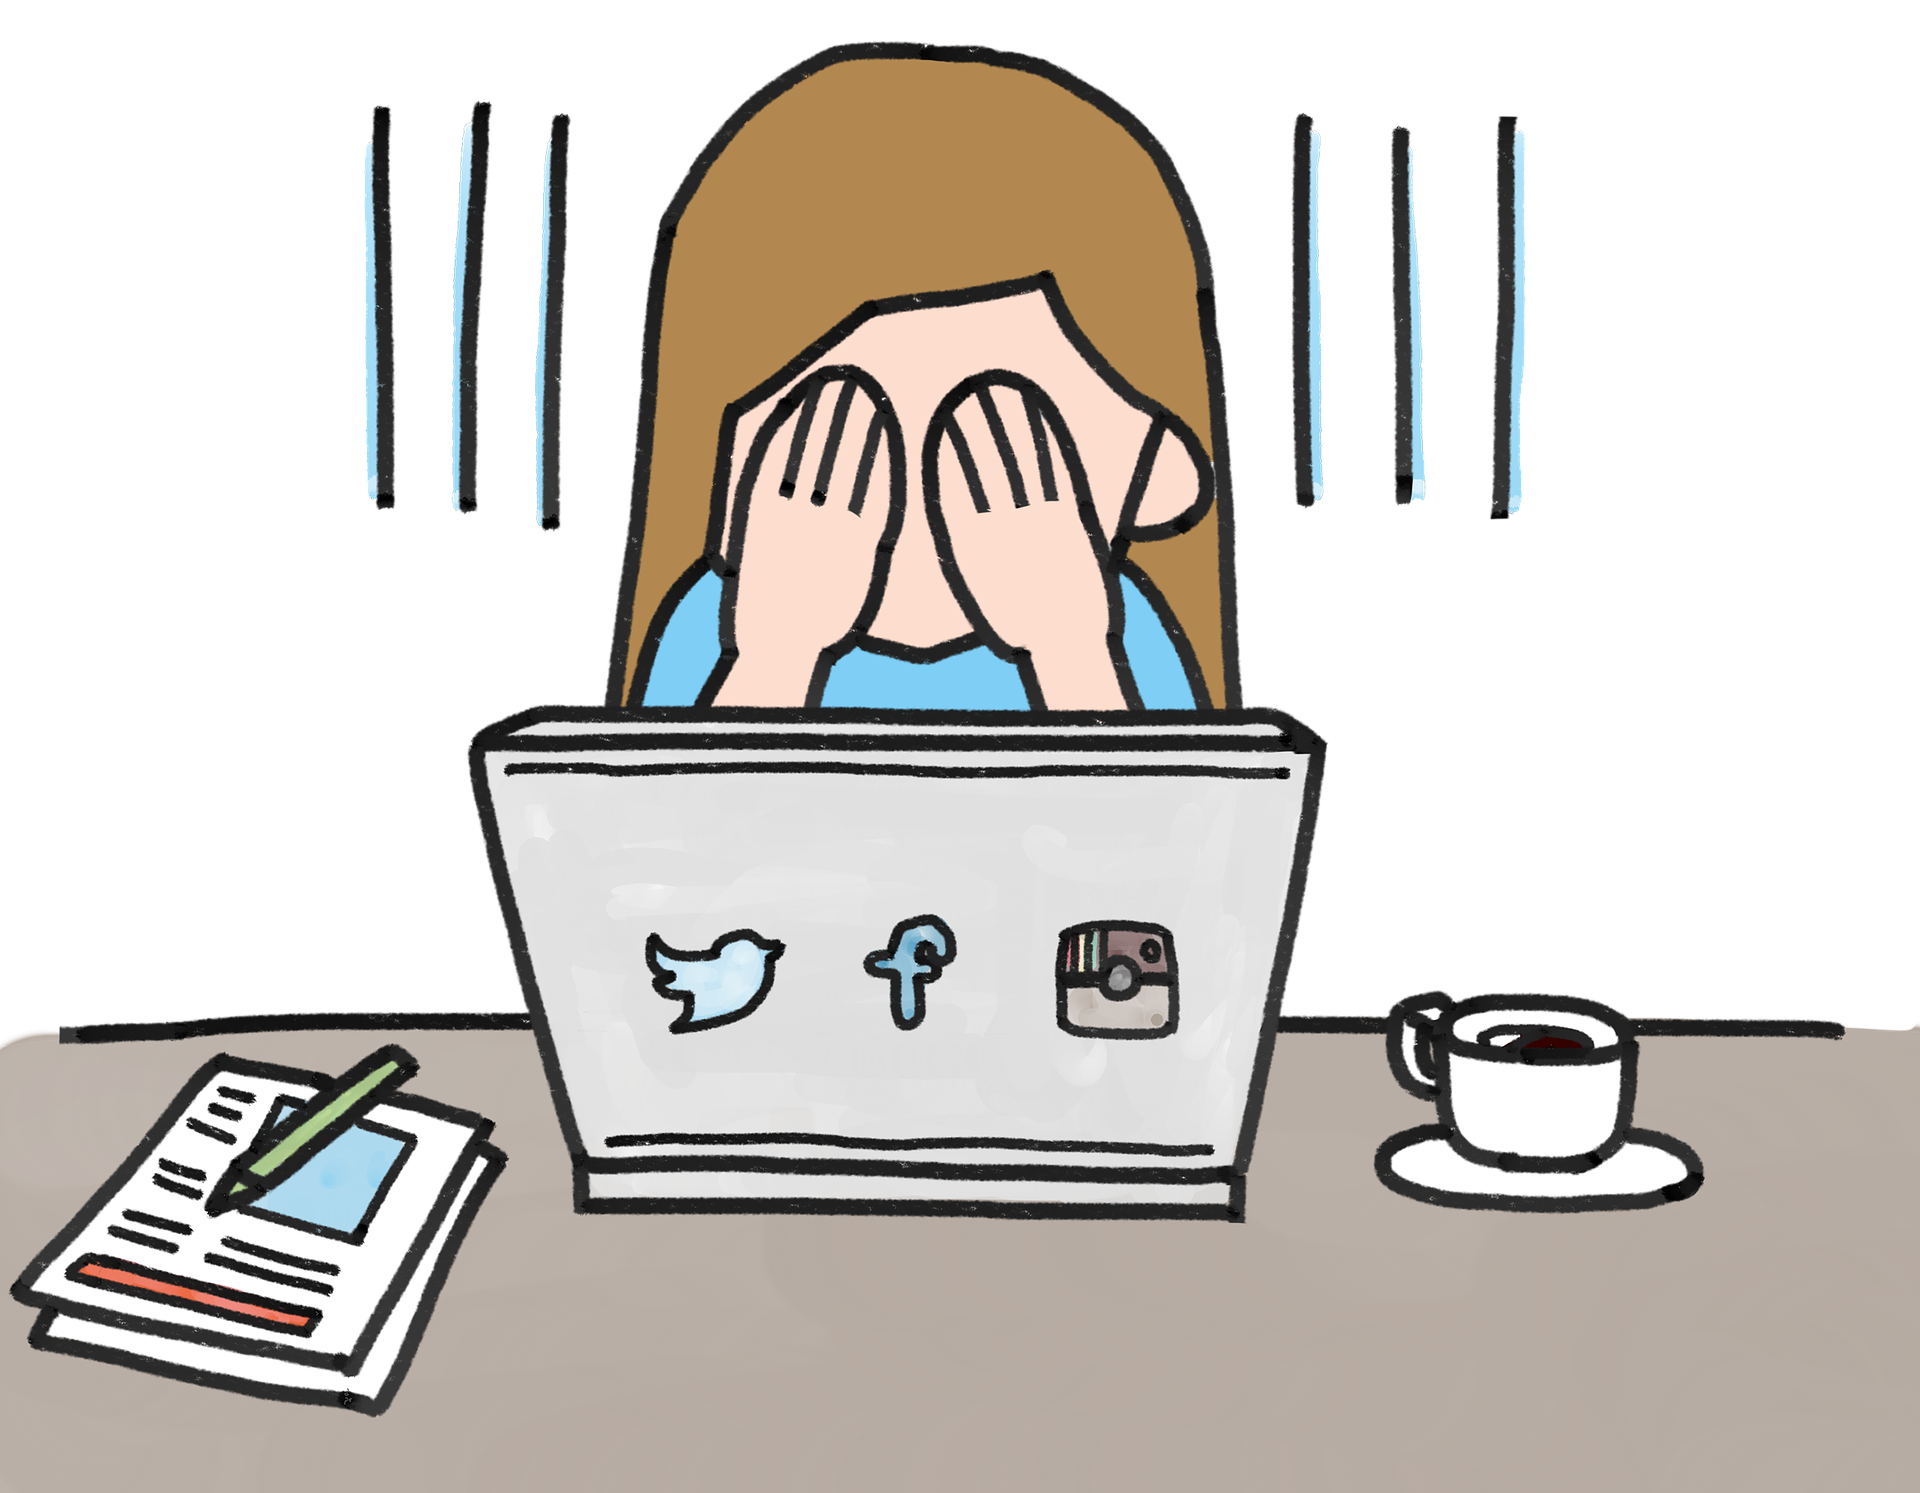 Drugs clipart clueless girl. Posts by kristine hopeful